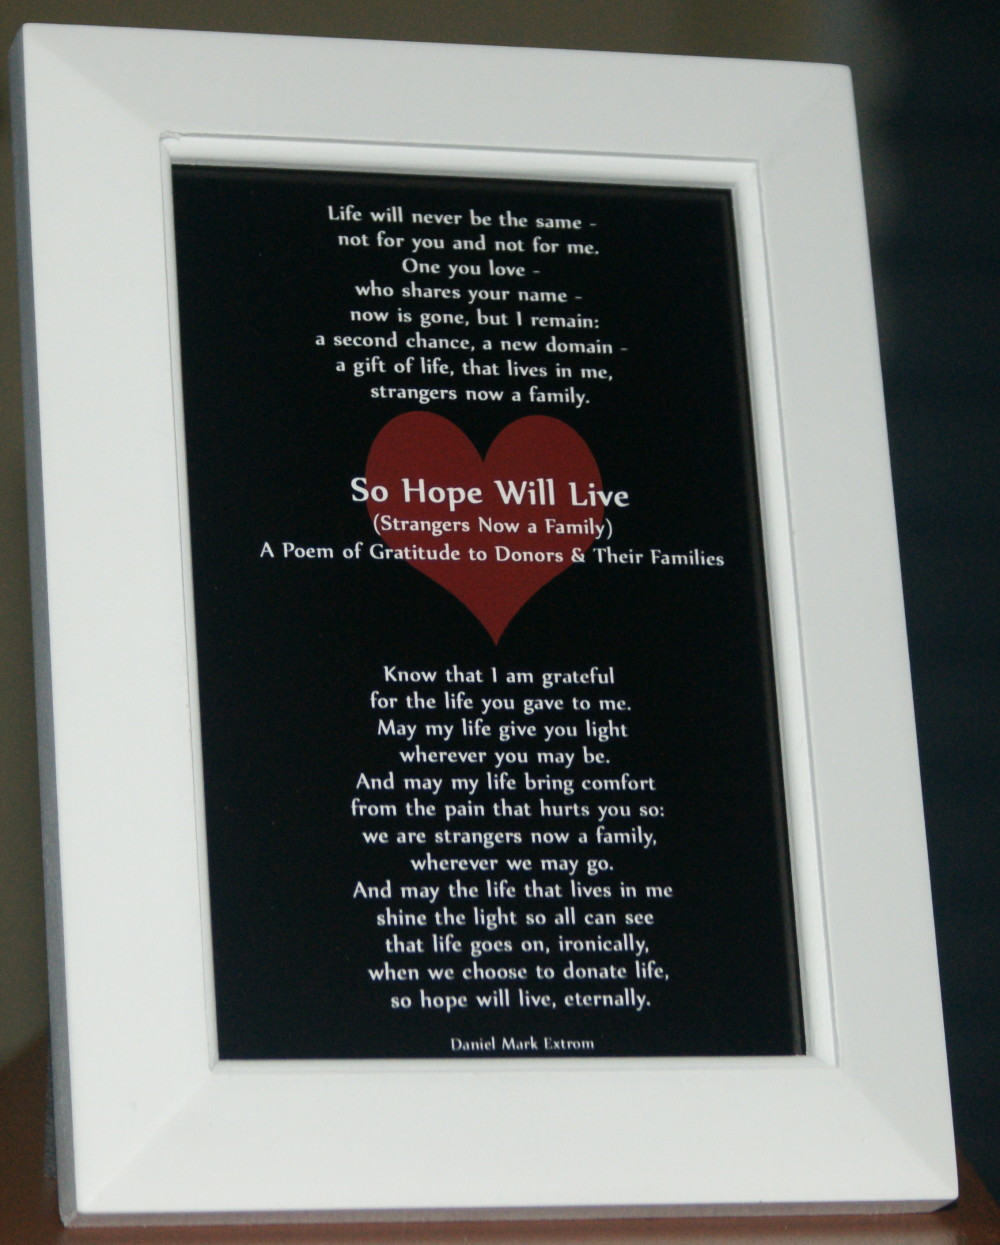 So Hope Will Live White Frame 6x4 inches Donate Life!